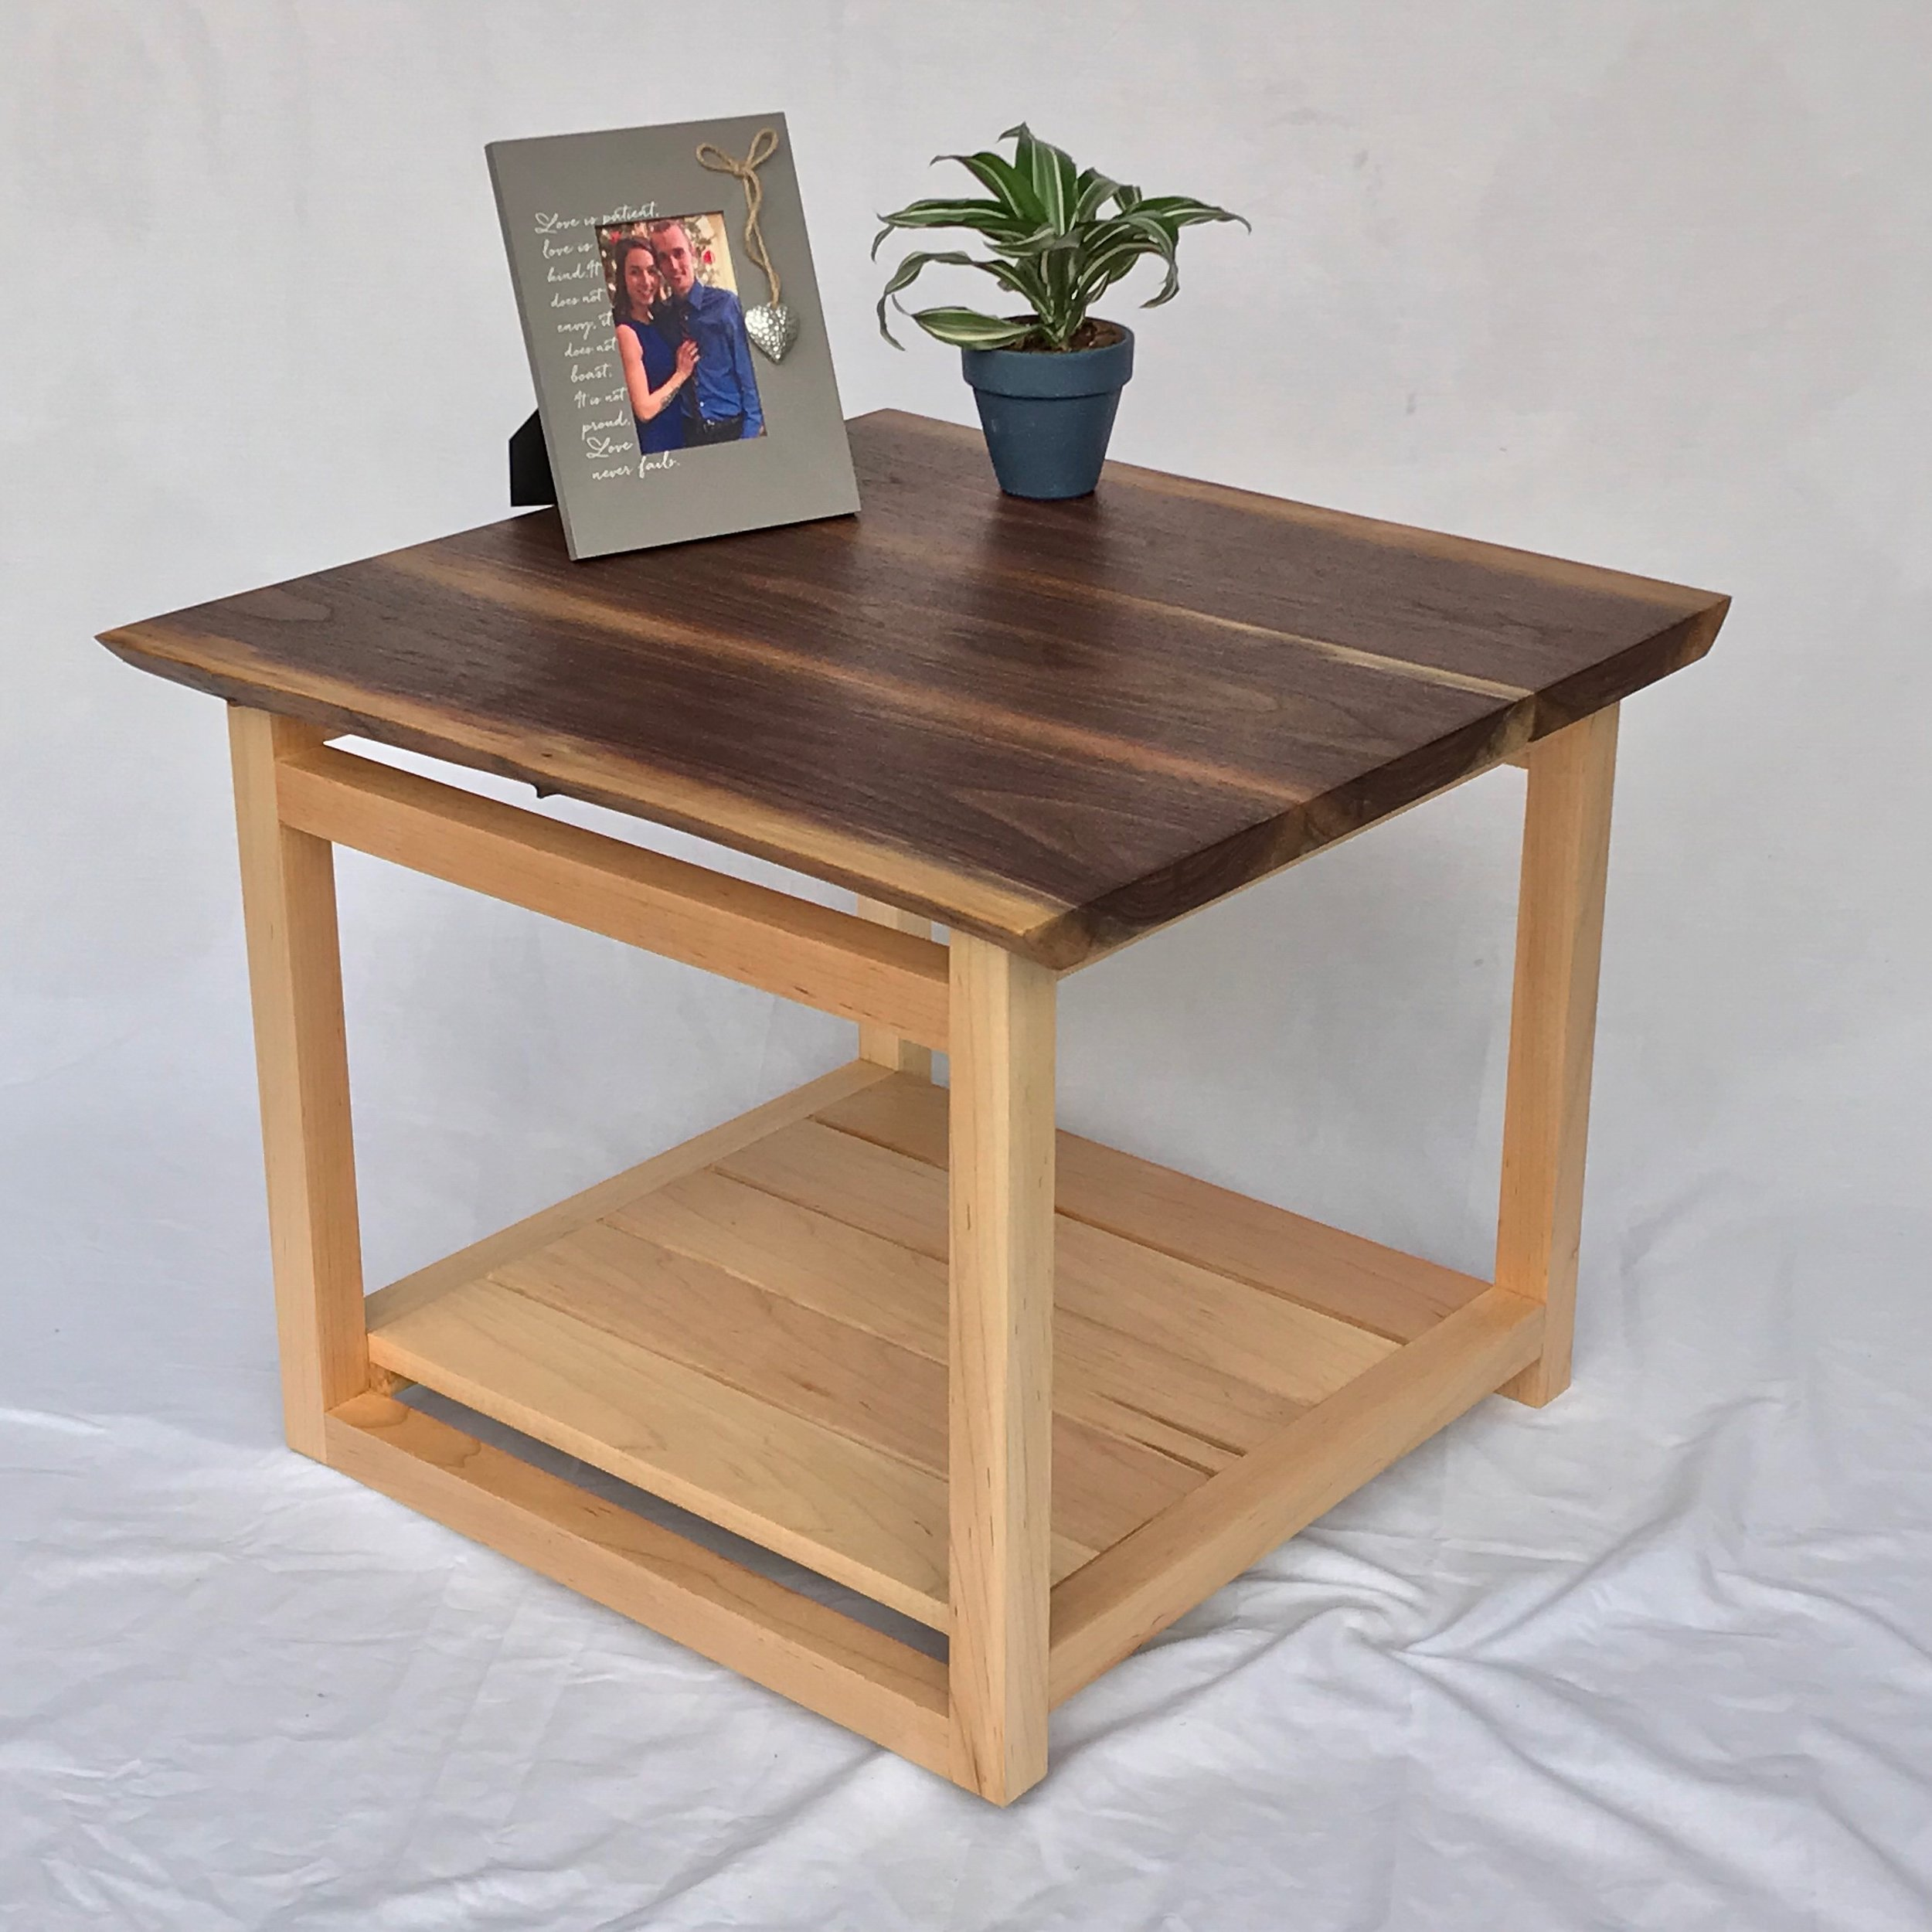 Walnut_Maple Side Table.JPG